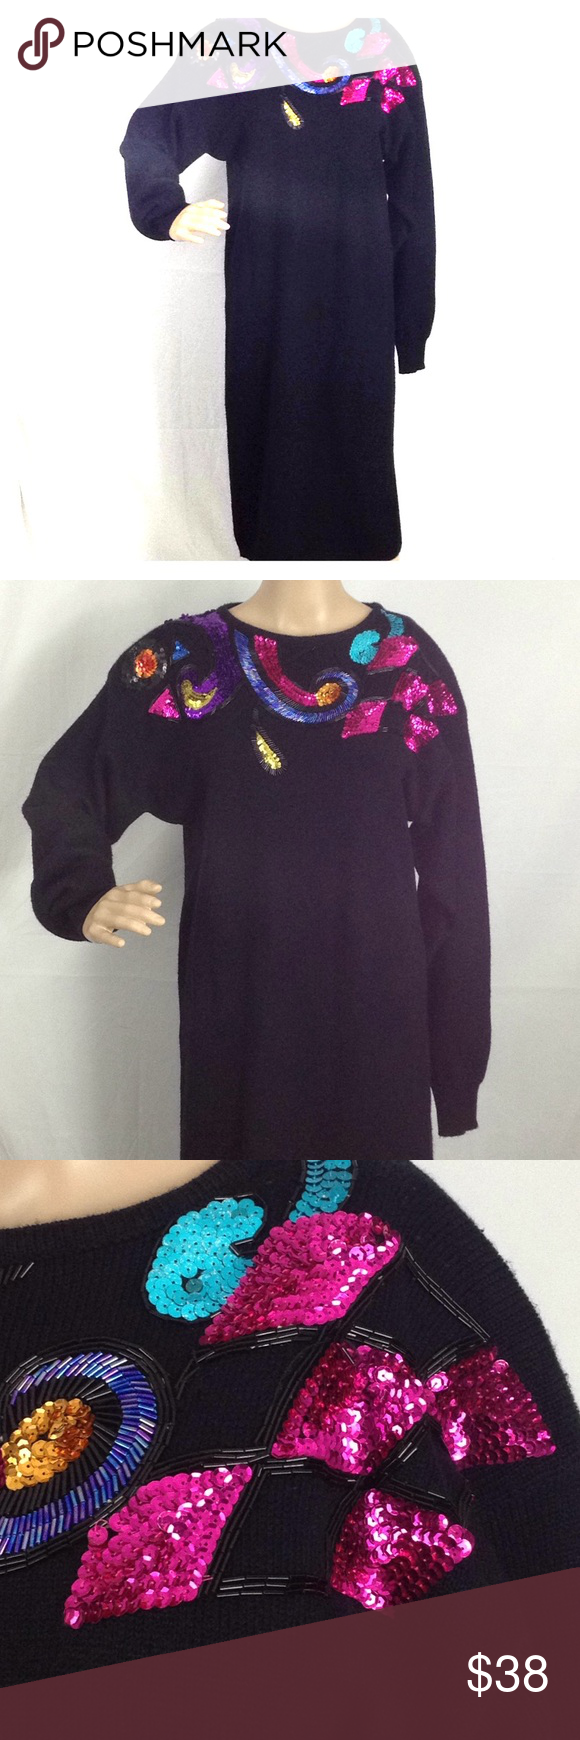 129d6abcbfa Bling Sweater Dress Sequence   Beaded sweater dress from Designer Darian  Dress is in great worn condition. This does not alter the quality or appeal  of ...